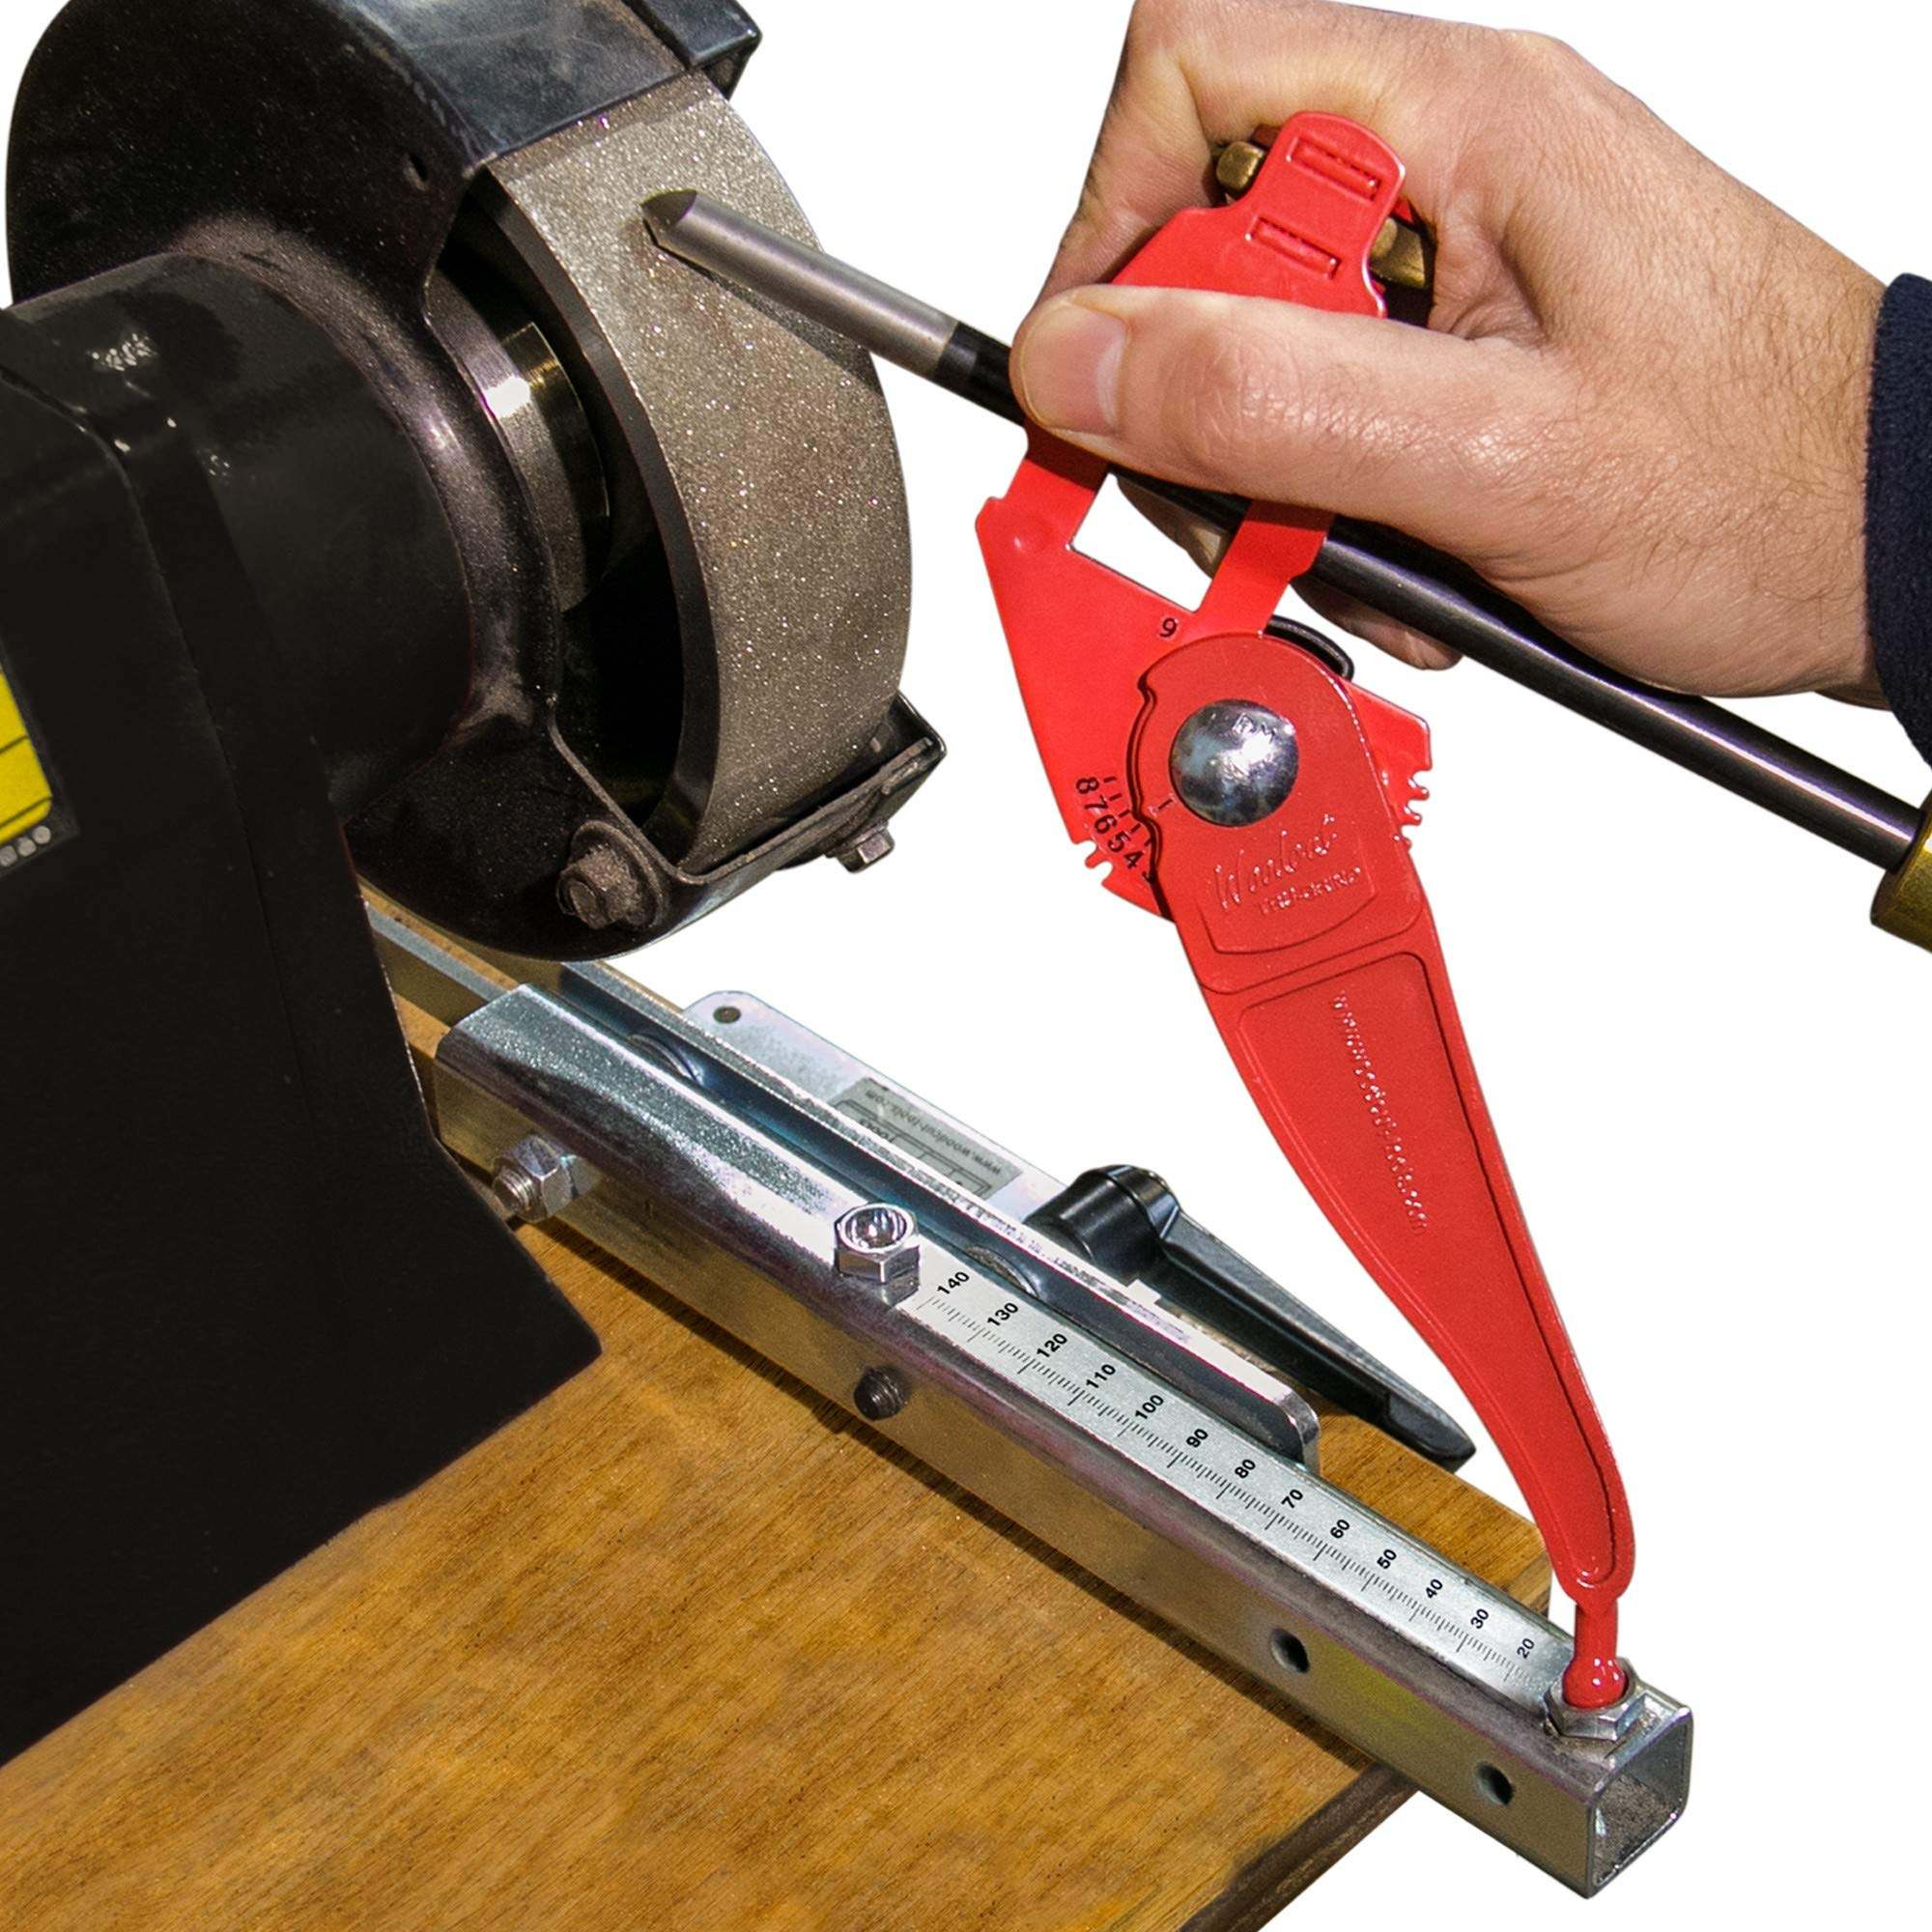 Tru-Grind Turning Tool Sharpener is an Easy, Repeatable, Precise Jig and base for Woodturning Tools including Gouges, Scrapers, Parting Tools, Skew Chisels, Carving, Carpenters, Lathe and Drills bits by Woodcut Tools